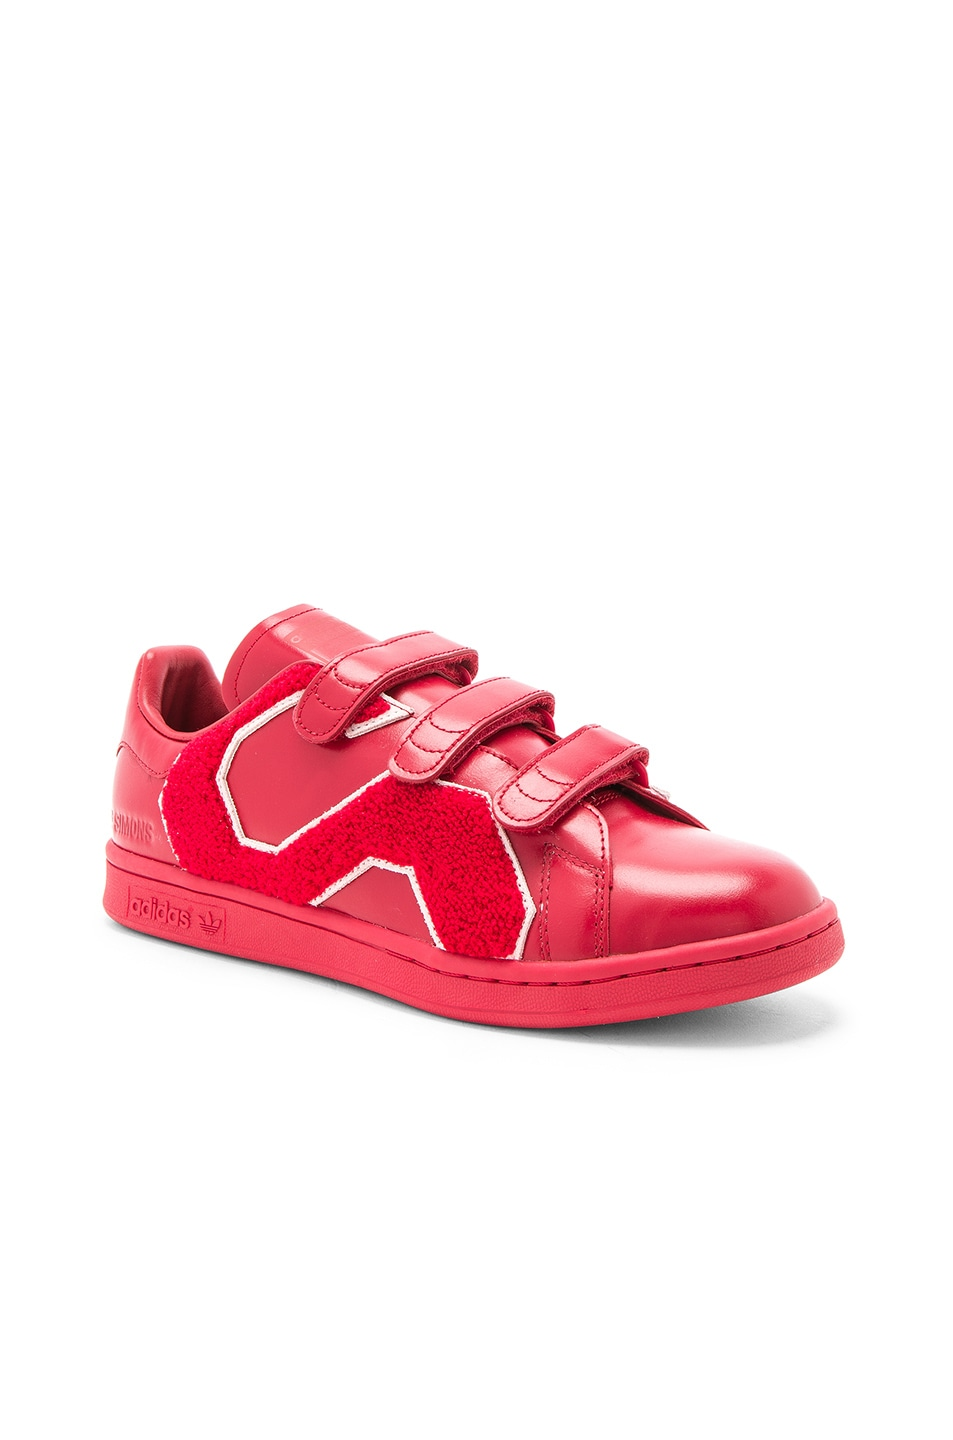 Image 1 of Raf Simons x Adidas RS Stan Smith Comfort Badge in Power Red 11be03fde